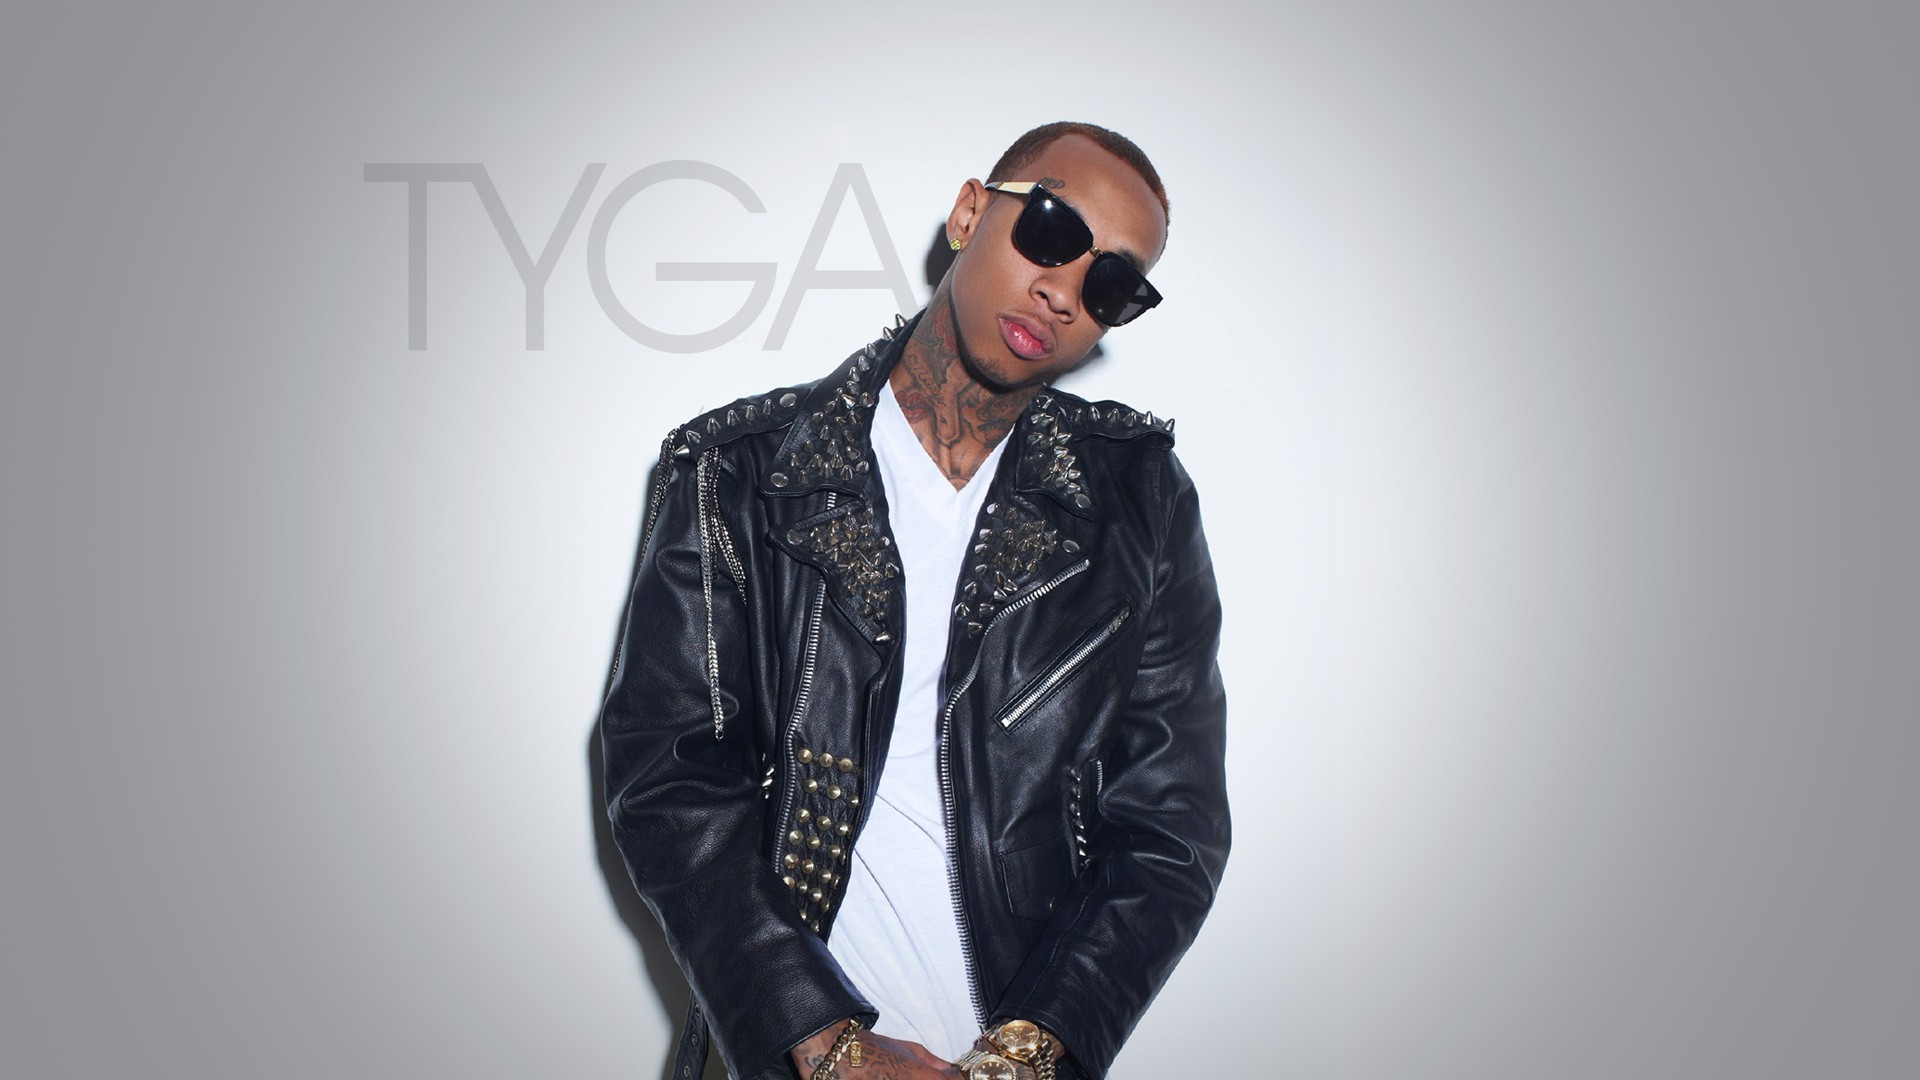 Download Tyga HD 12 background for your phone (iPhone & android .